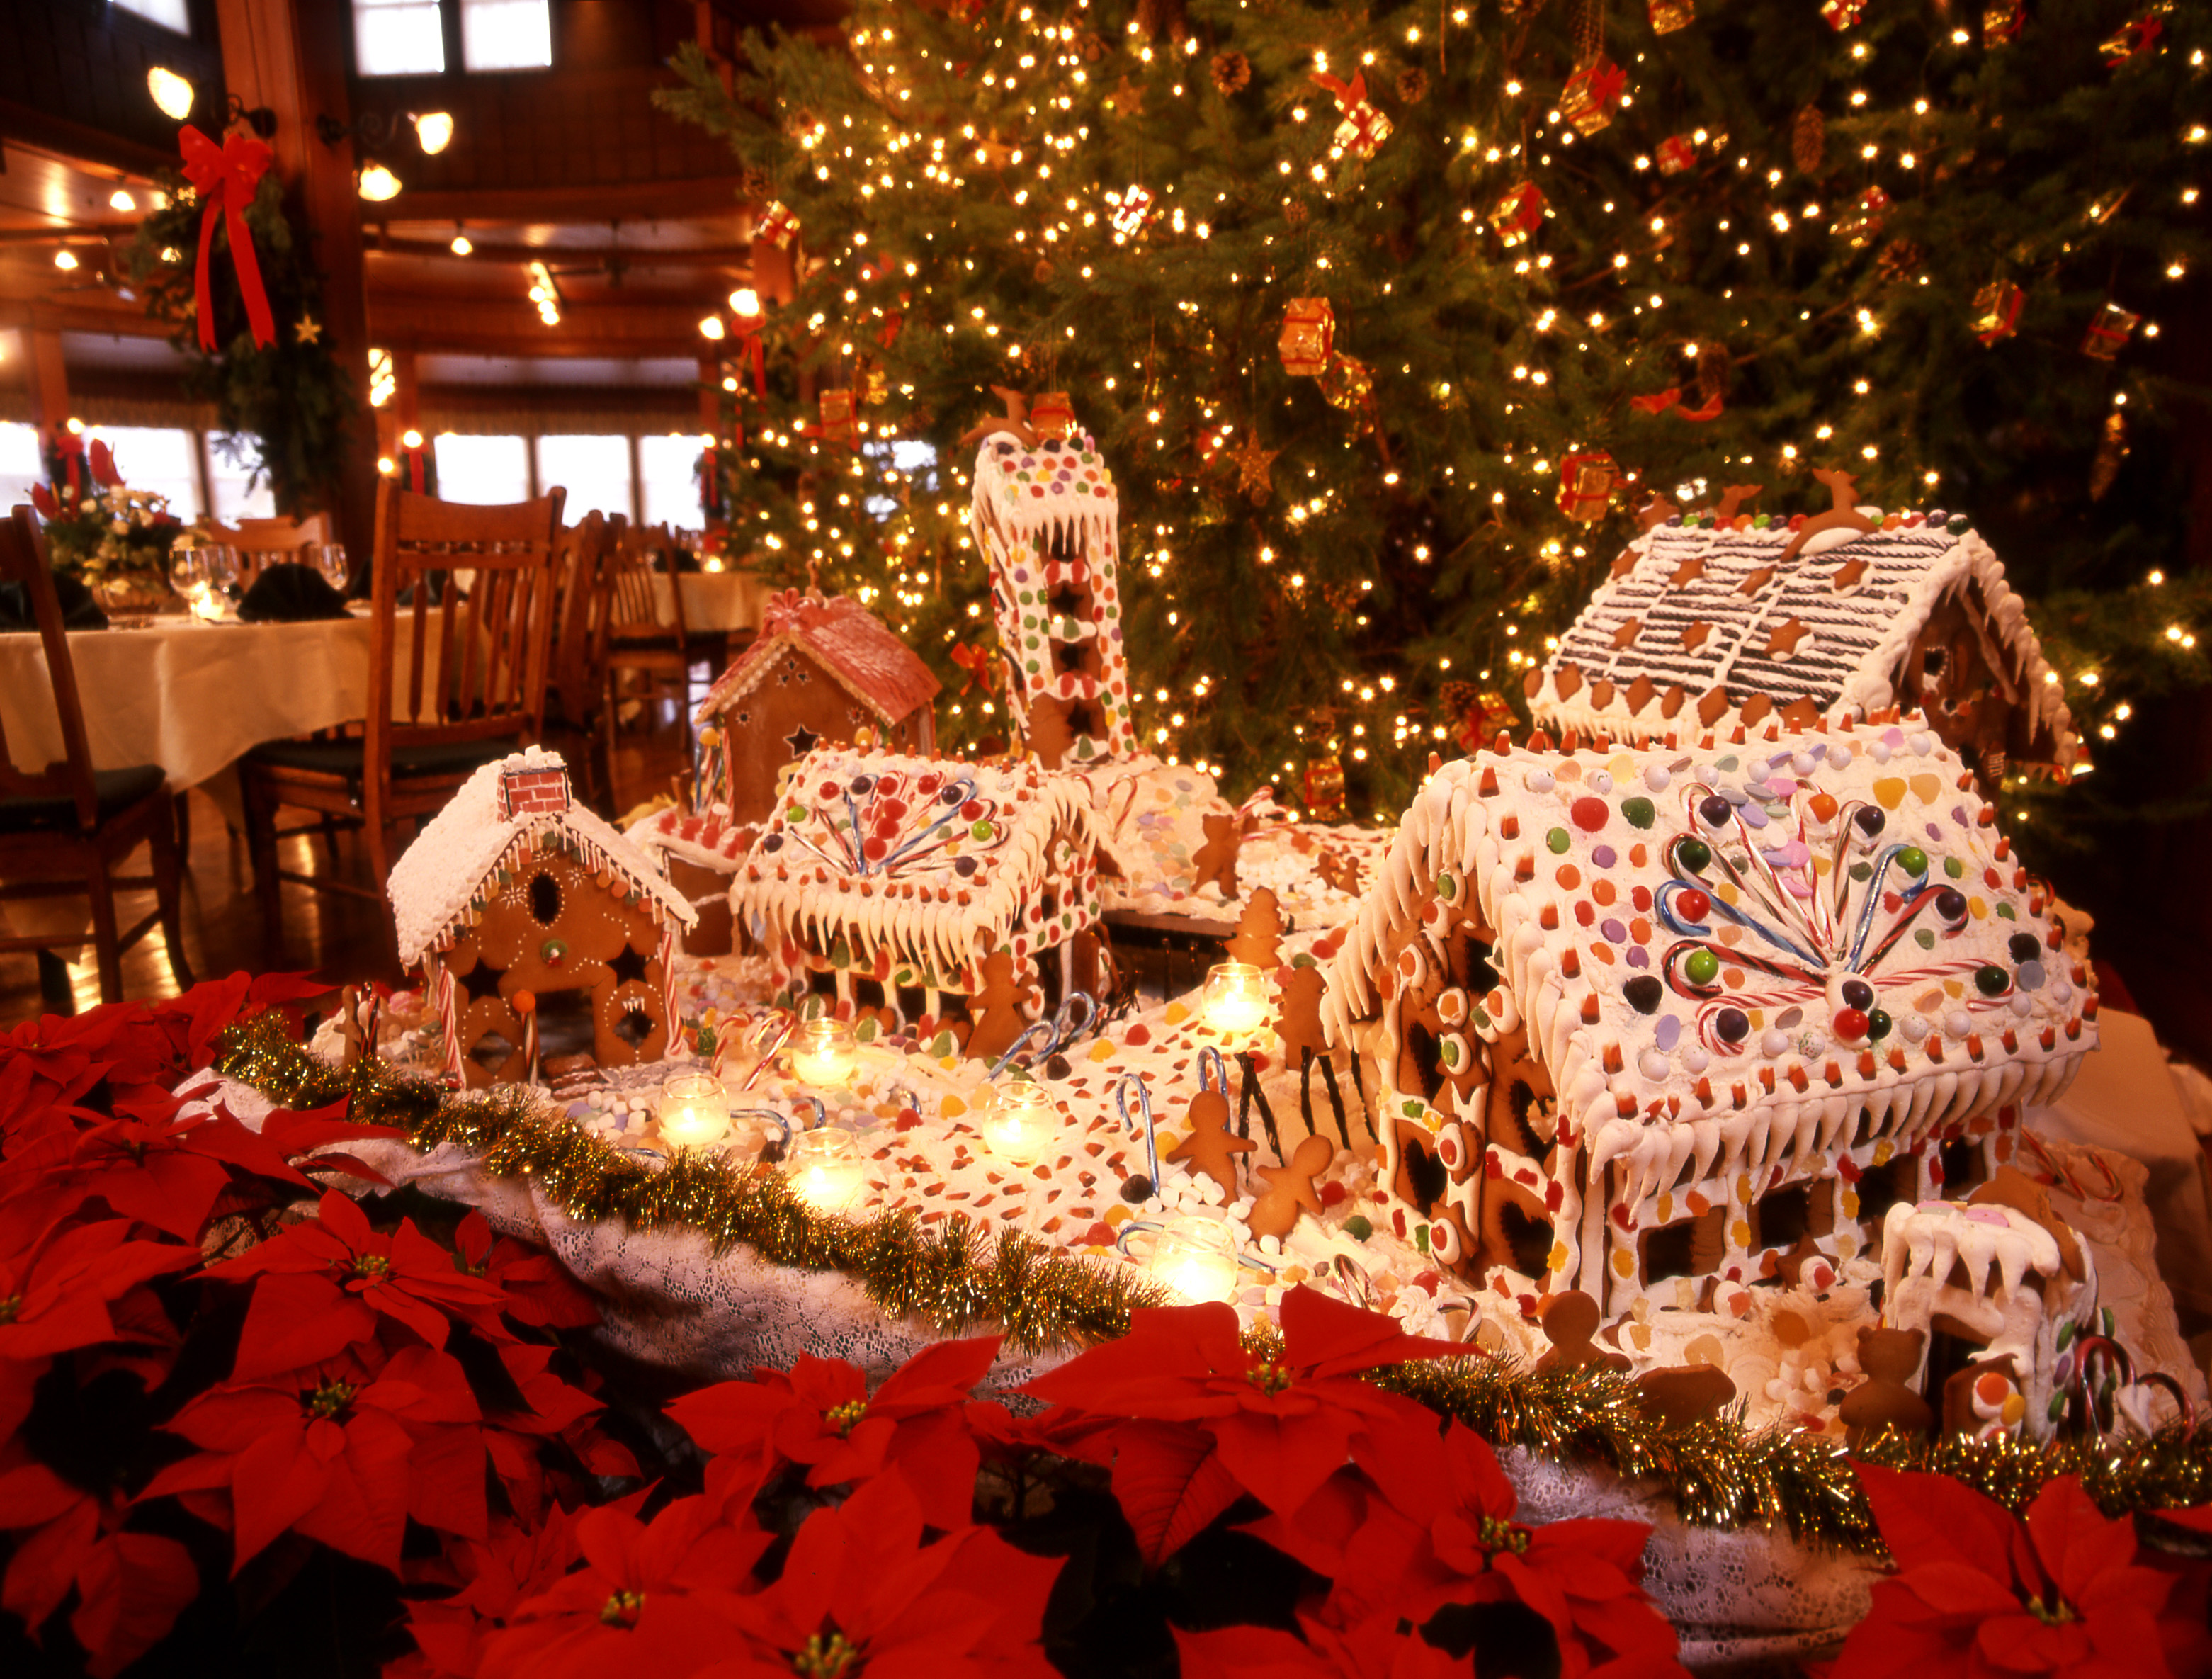 Christmas Holidays Pictures.Hotels At Christmas 15 That Go All Out For The Holidays